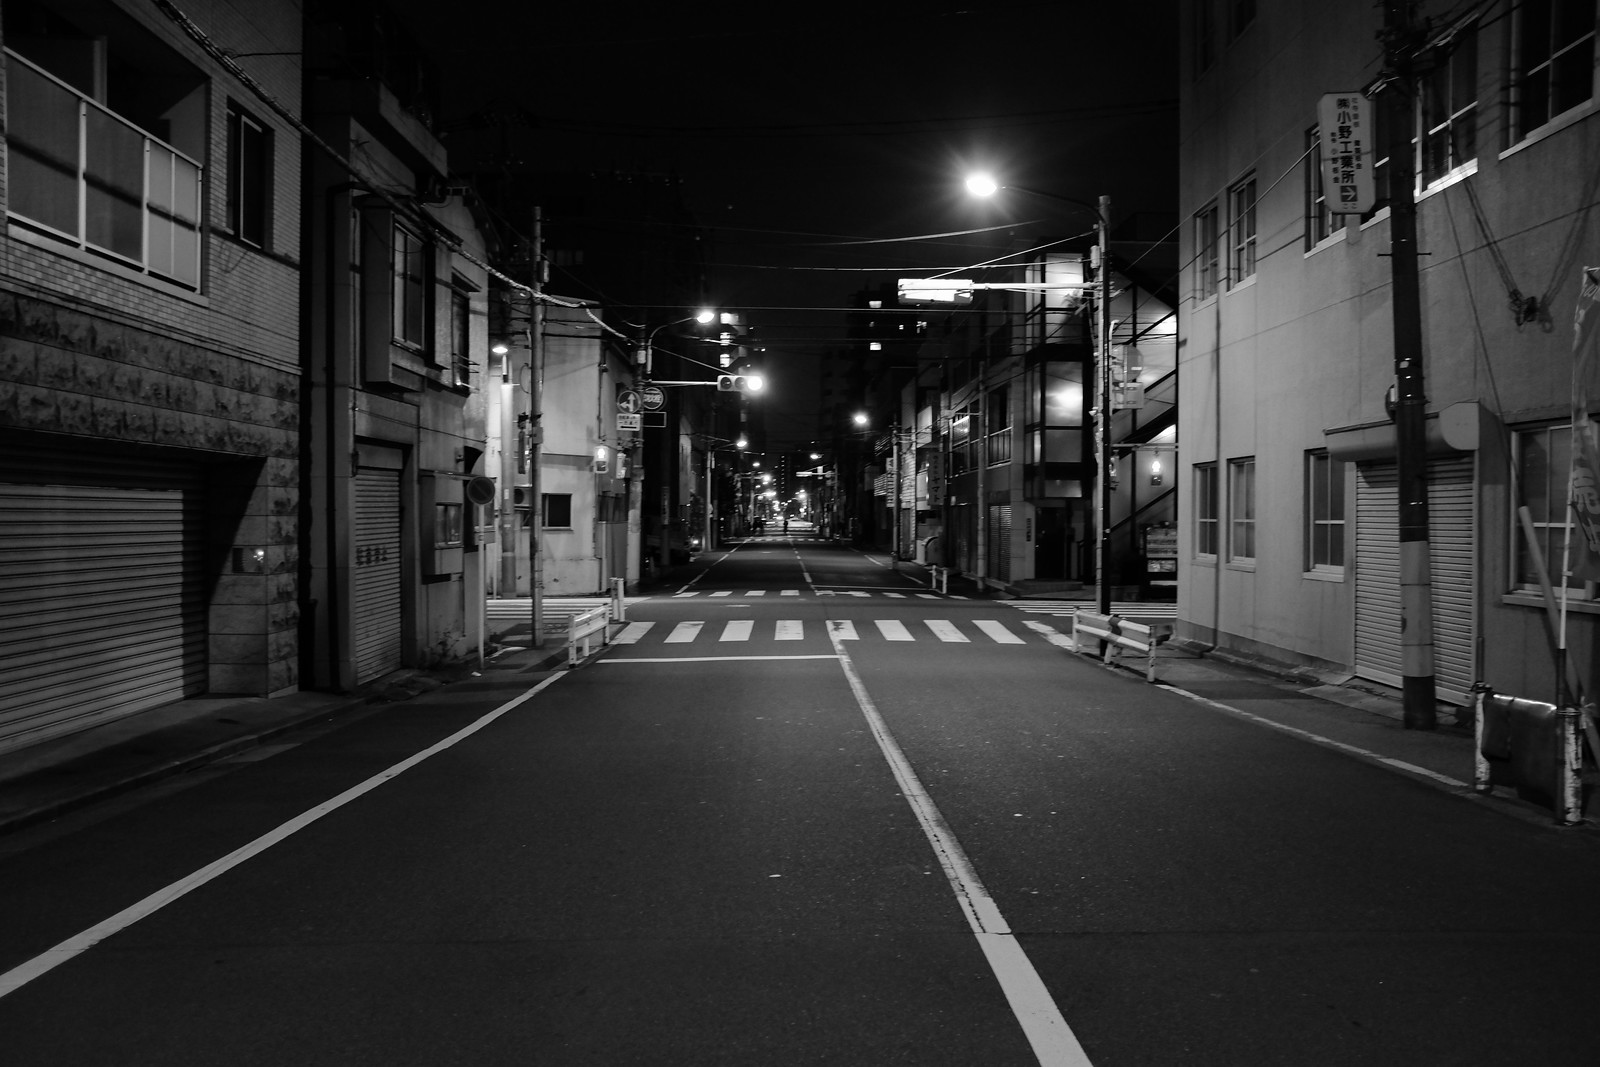 Sumidaku Kinshicho night photo in Tokyo, Japan.